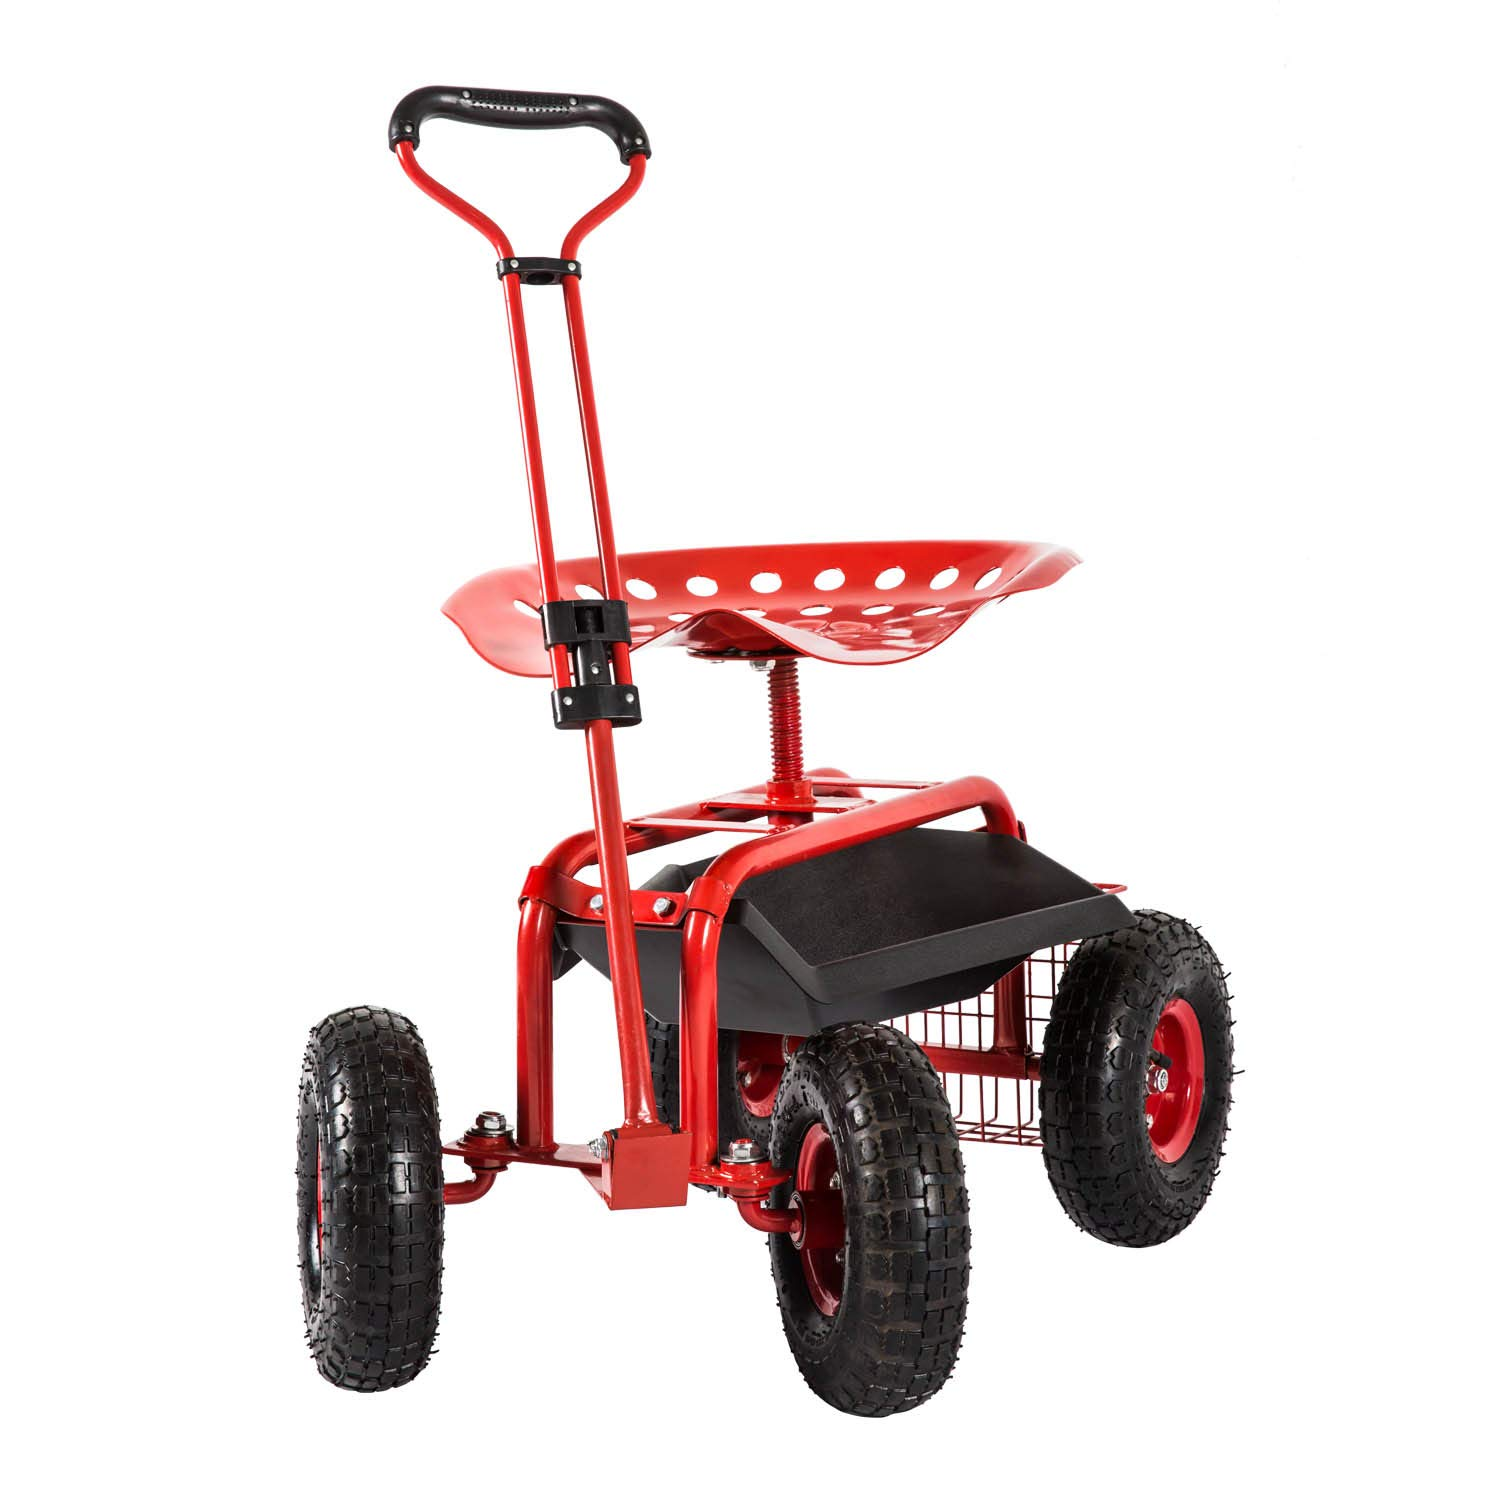 Peach Tree Garden Cart Rolling Work Seat Outdoor Utility Lawn Yard Patio Wagon Scooter for Planting, Adjustable Handle 360 Degree Swivel Seat Red